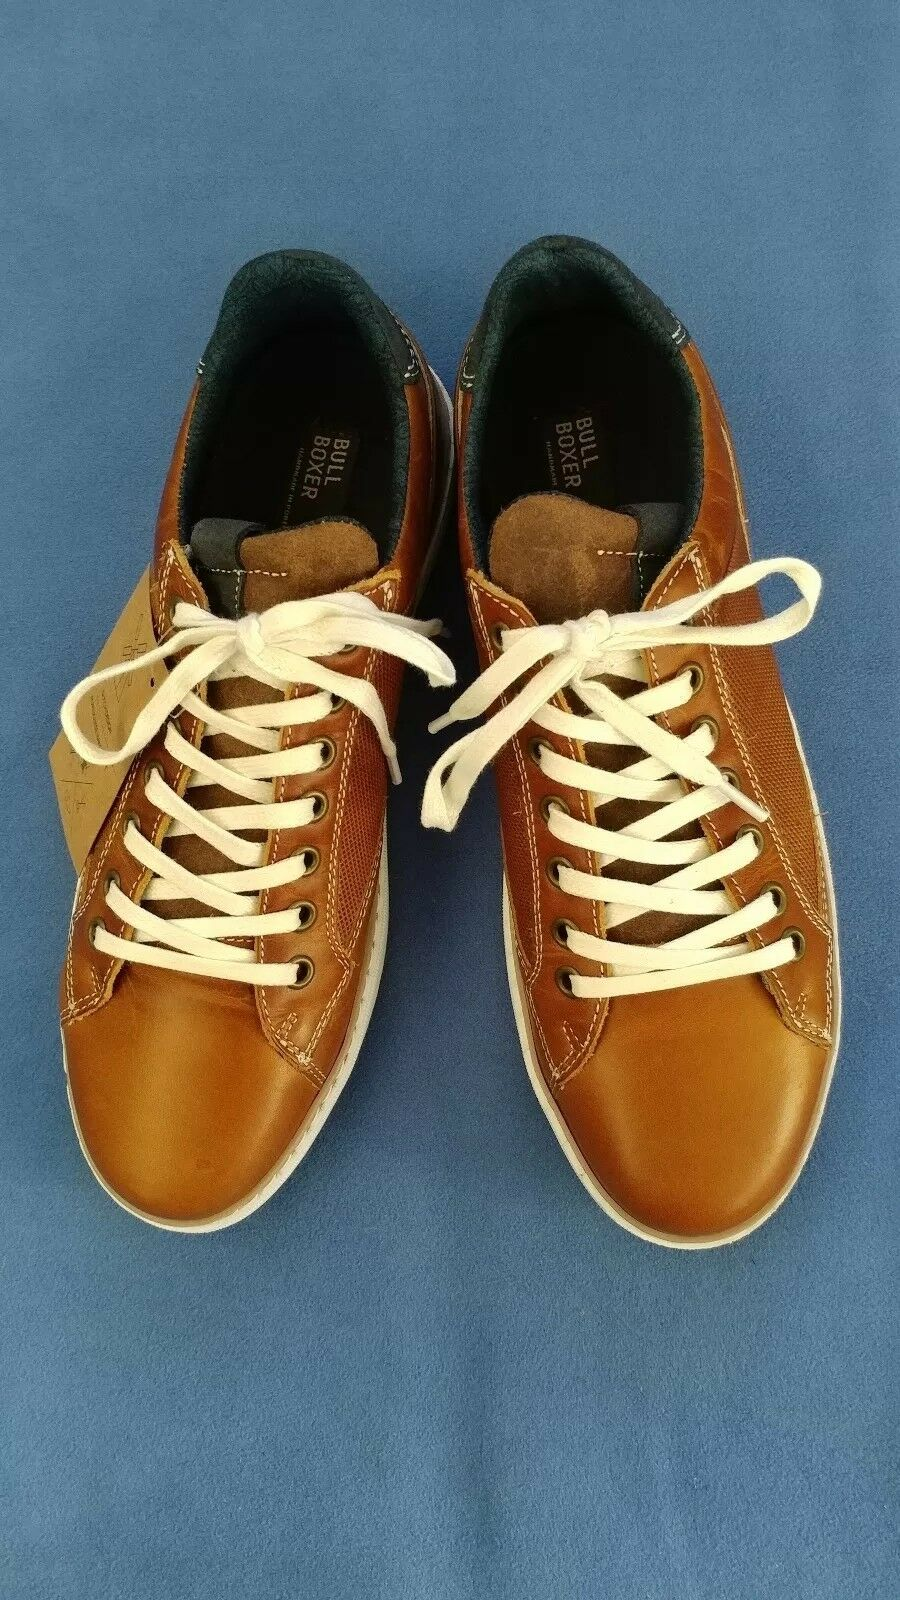 Bullboxer Mens Brown Mordecai Casual Sneaker 10M Handcrafted in Portugal NWOB